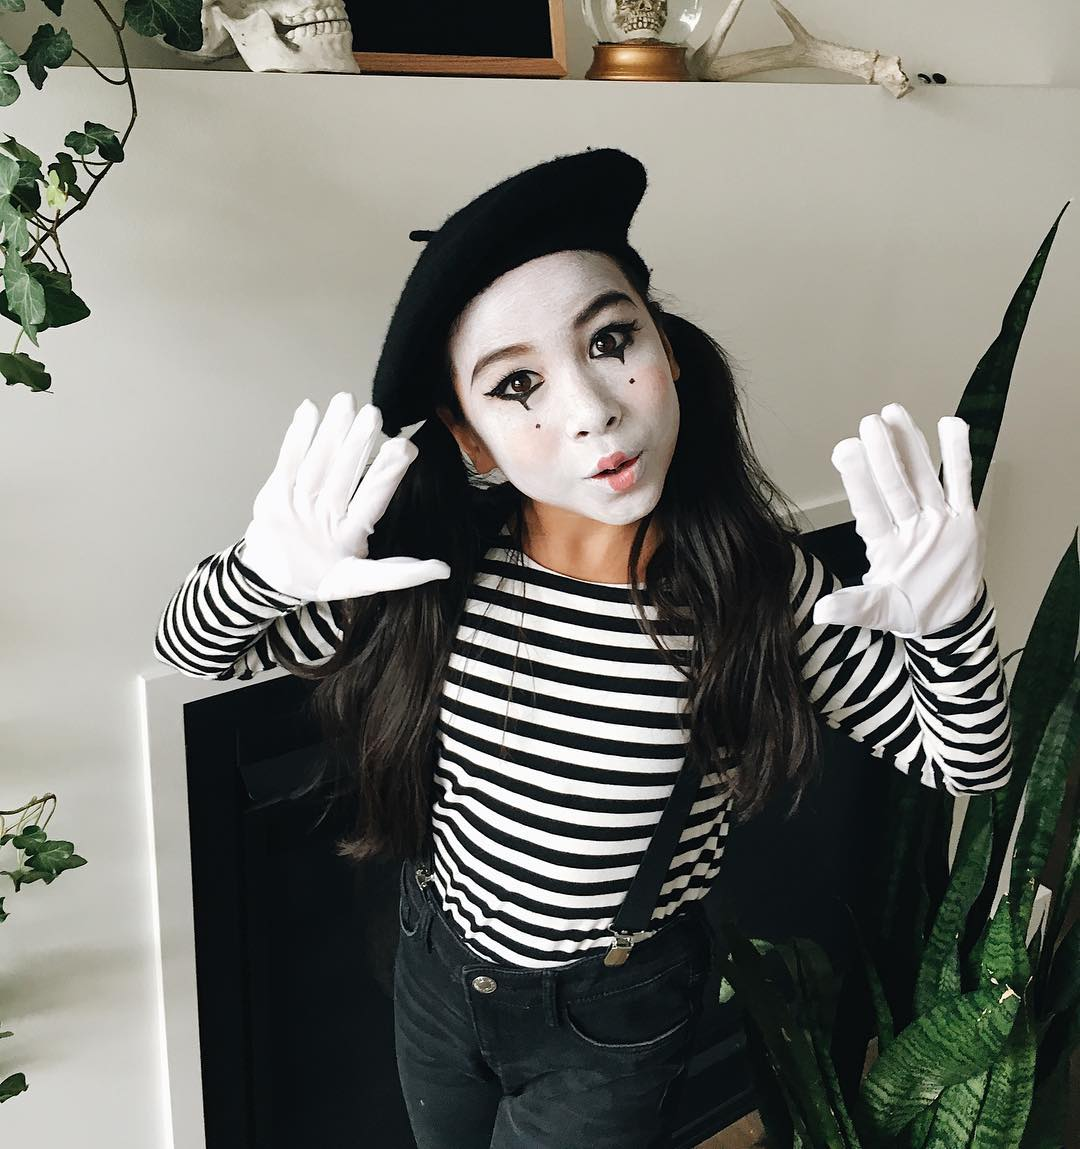 10 College Halloween Costumes That You'll Love! Easy DIY College Costumes perfect for freshman or . seniors alike! Easy and Creative College Costumes! Halloween costume women cute! Halloween costume woman sexy! Whatever you you want, you can find it here for halloweekend! #halloween #college